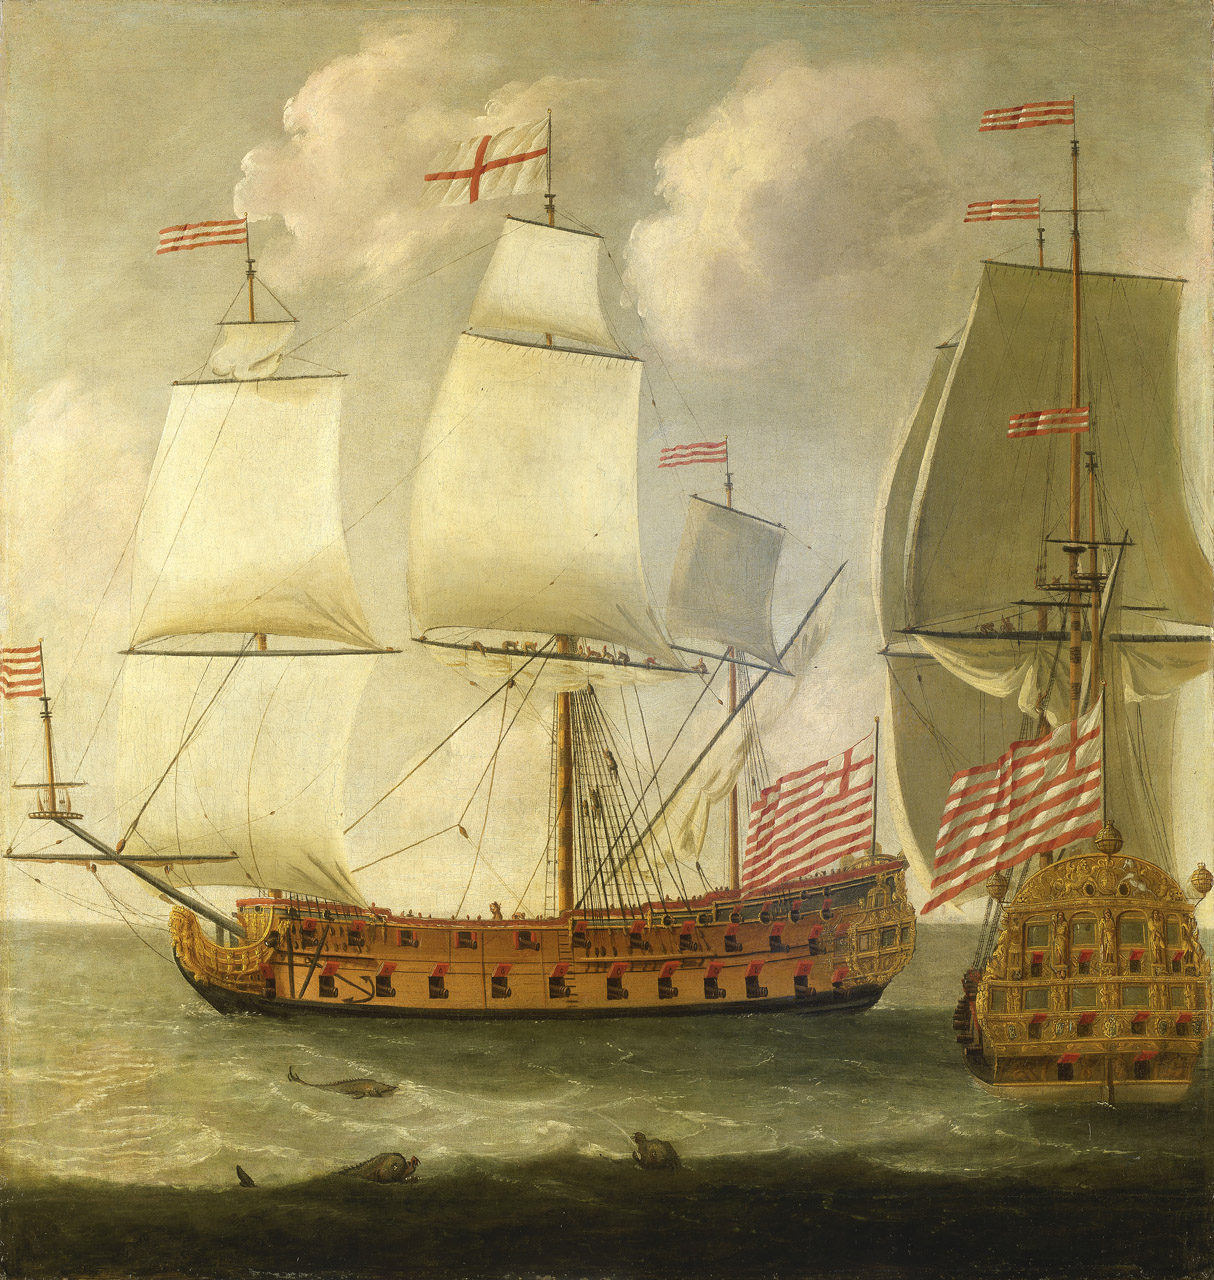 The 1685 painting, Two Views of an East Indiaman of the Time of King William III by artist Isaac Sailmaker